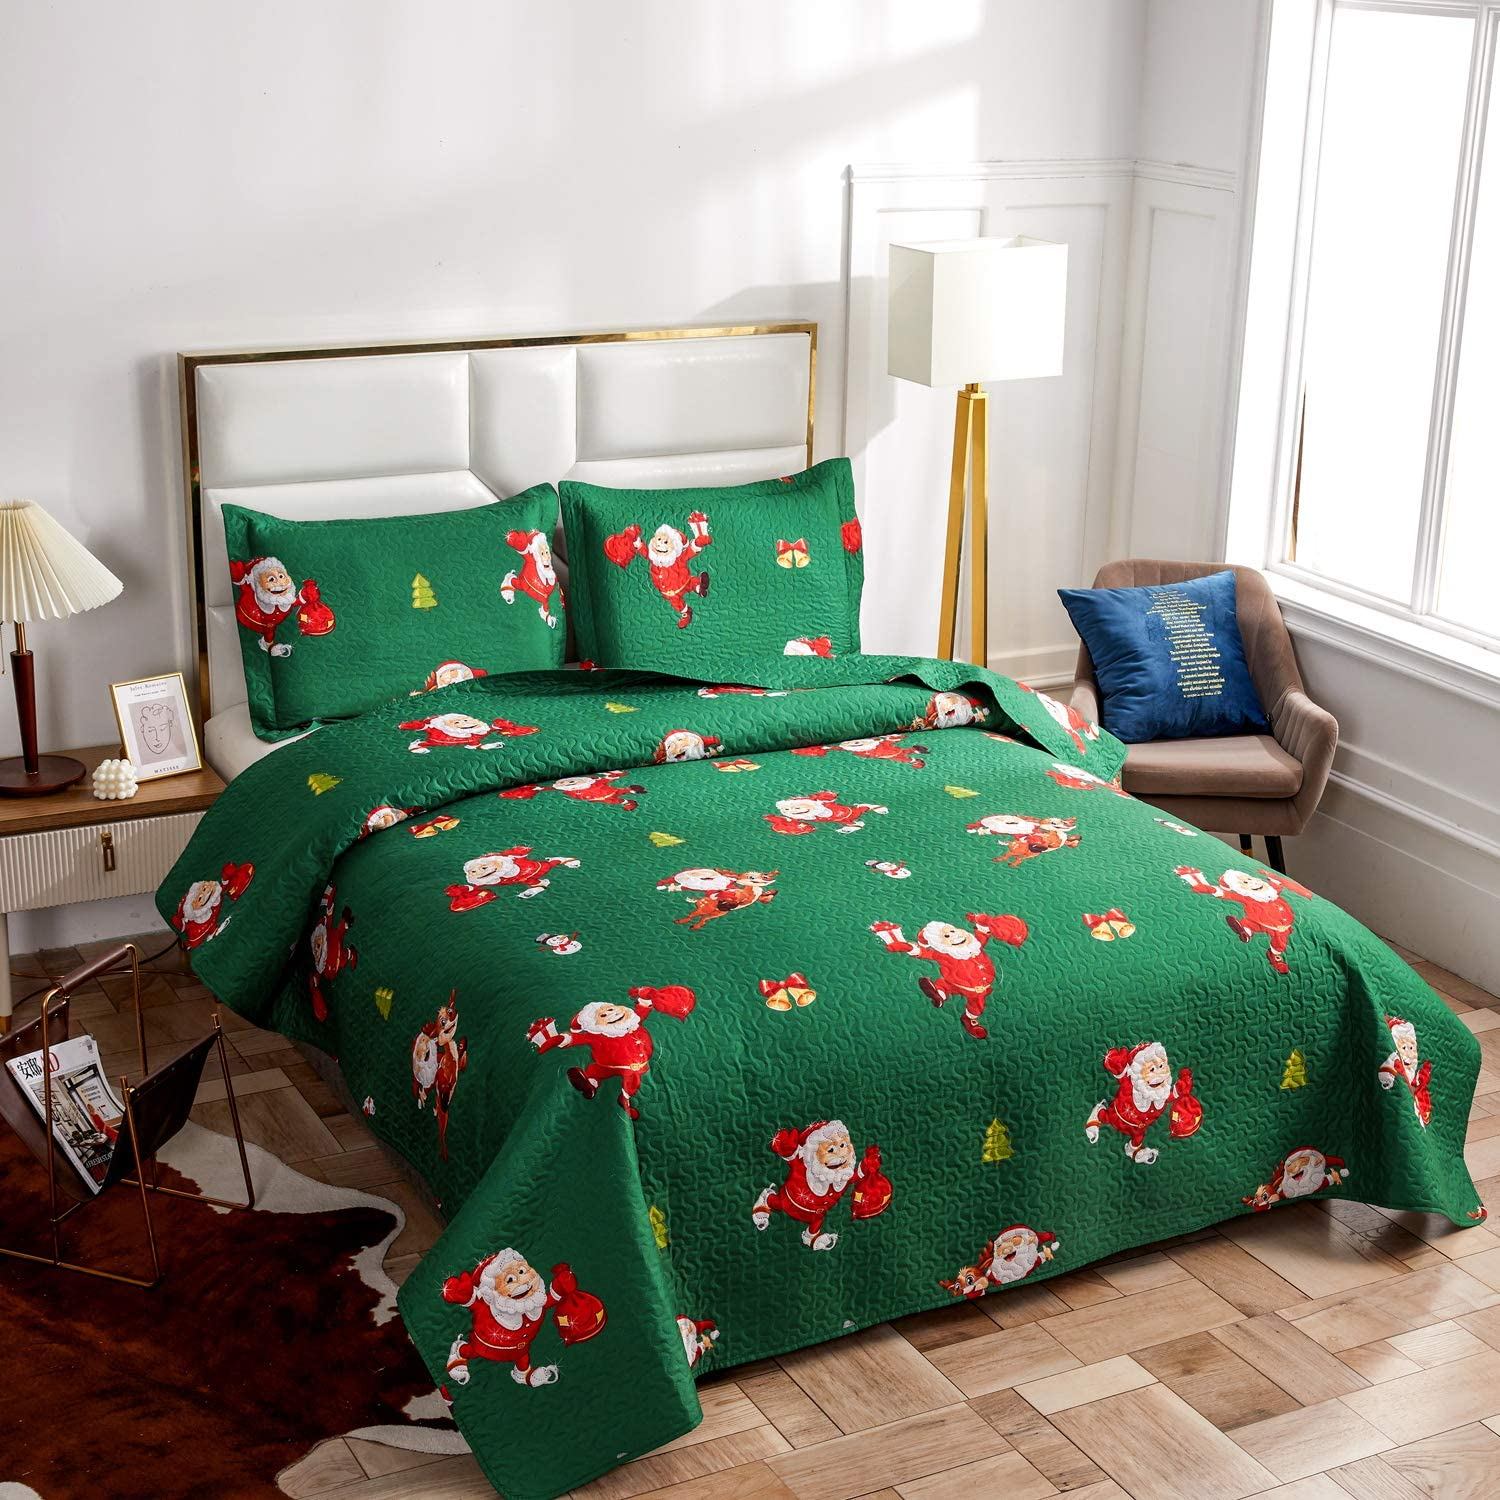 Christmas Bedding Set Full/Queen Size Quilts Blanket with Santa Claus/Snowman/Deer Reversible Lightweight Bedspreads Coverlet for Xmas Gift